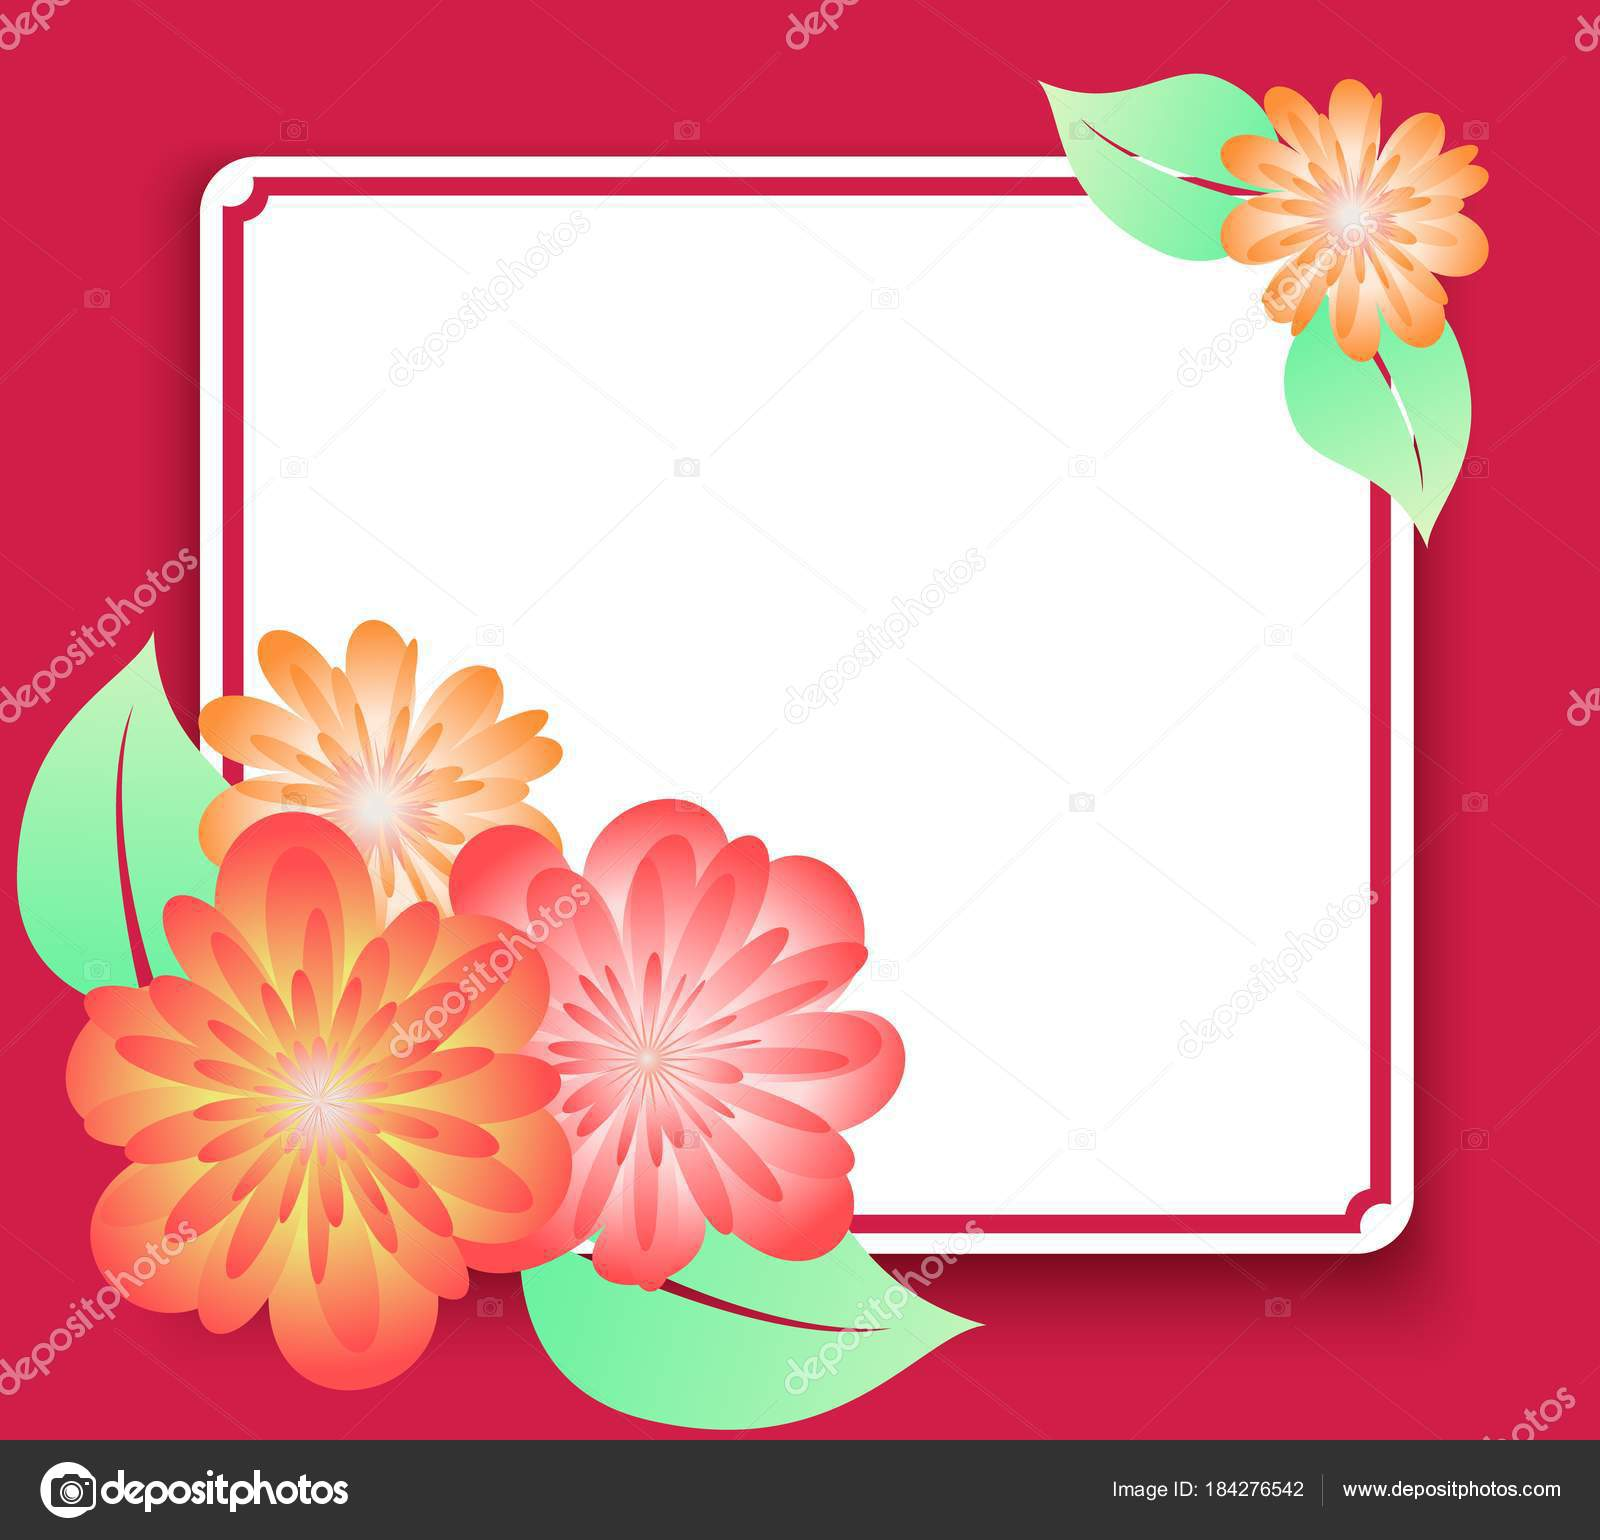 Greeting Card Frame With Flowers Template For Invitations Or